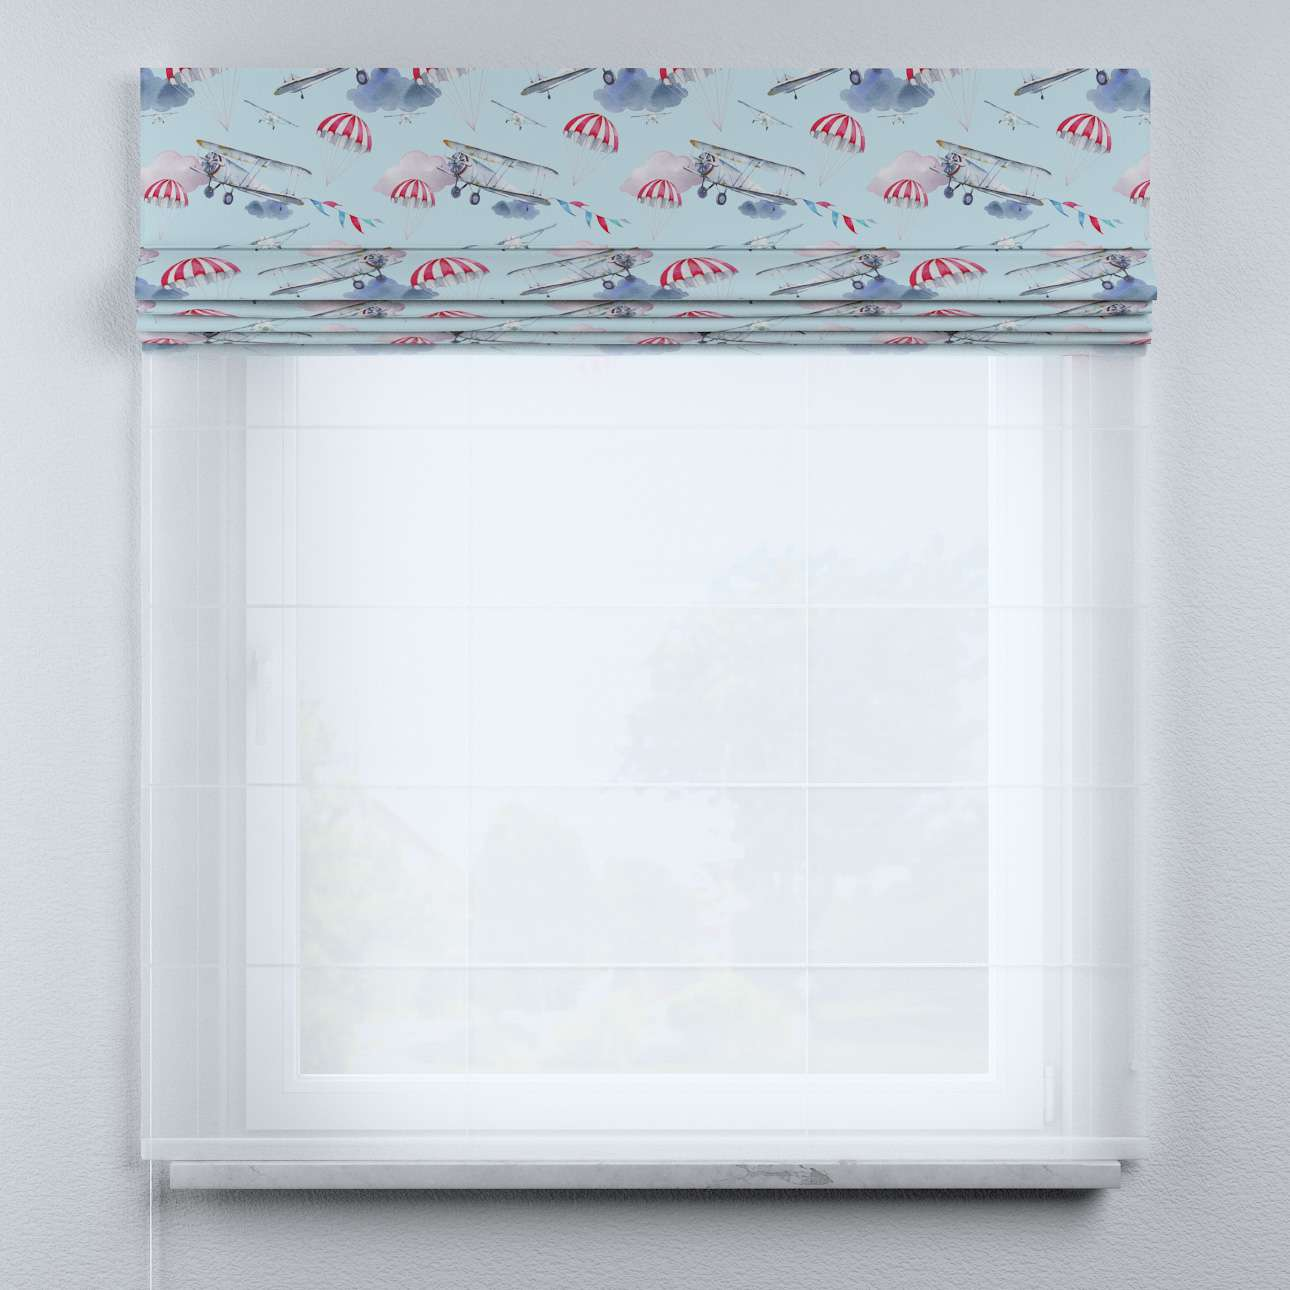 Voile and fabric roman blind (DUO II) in collection Magic Collection, fabric: 500-10